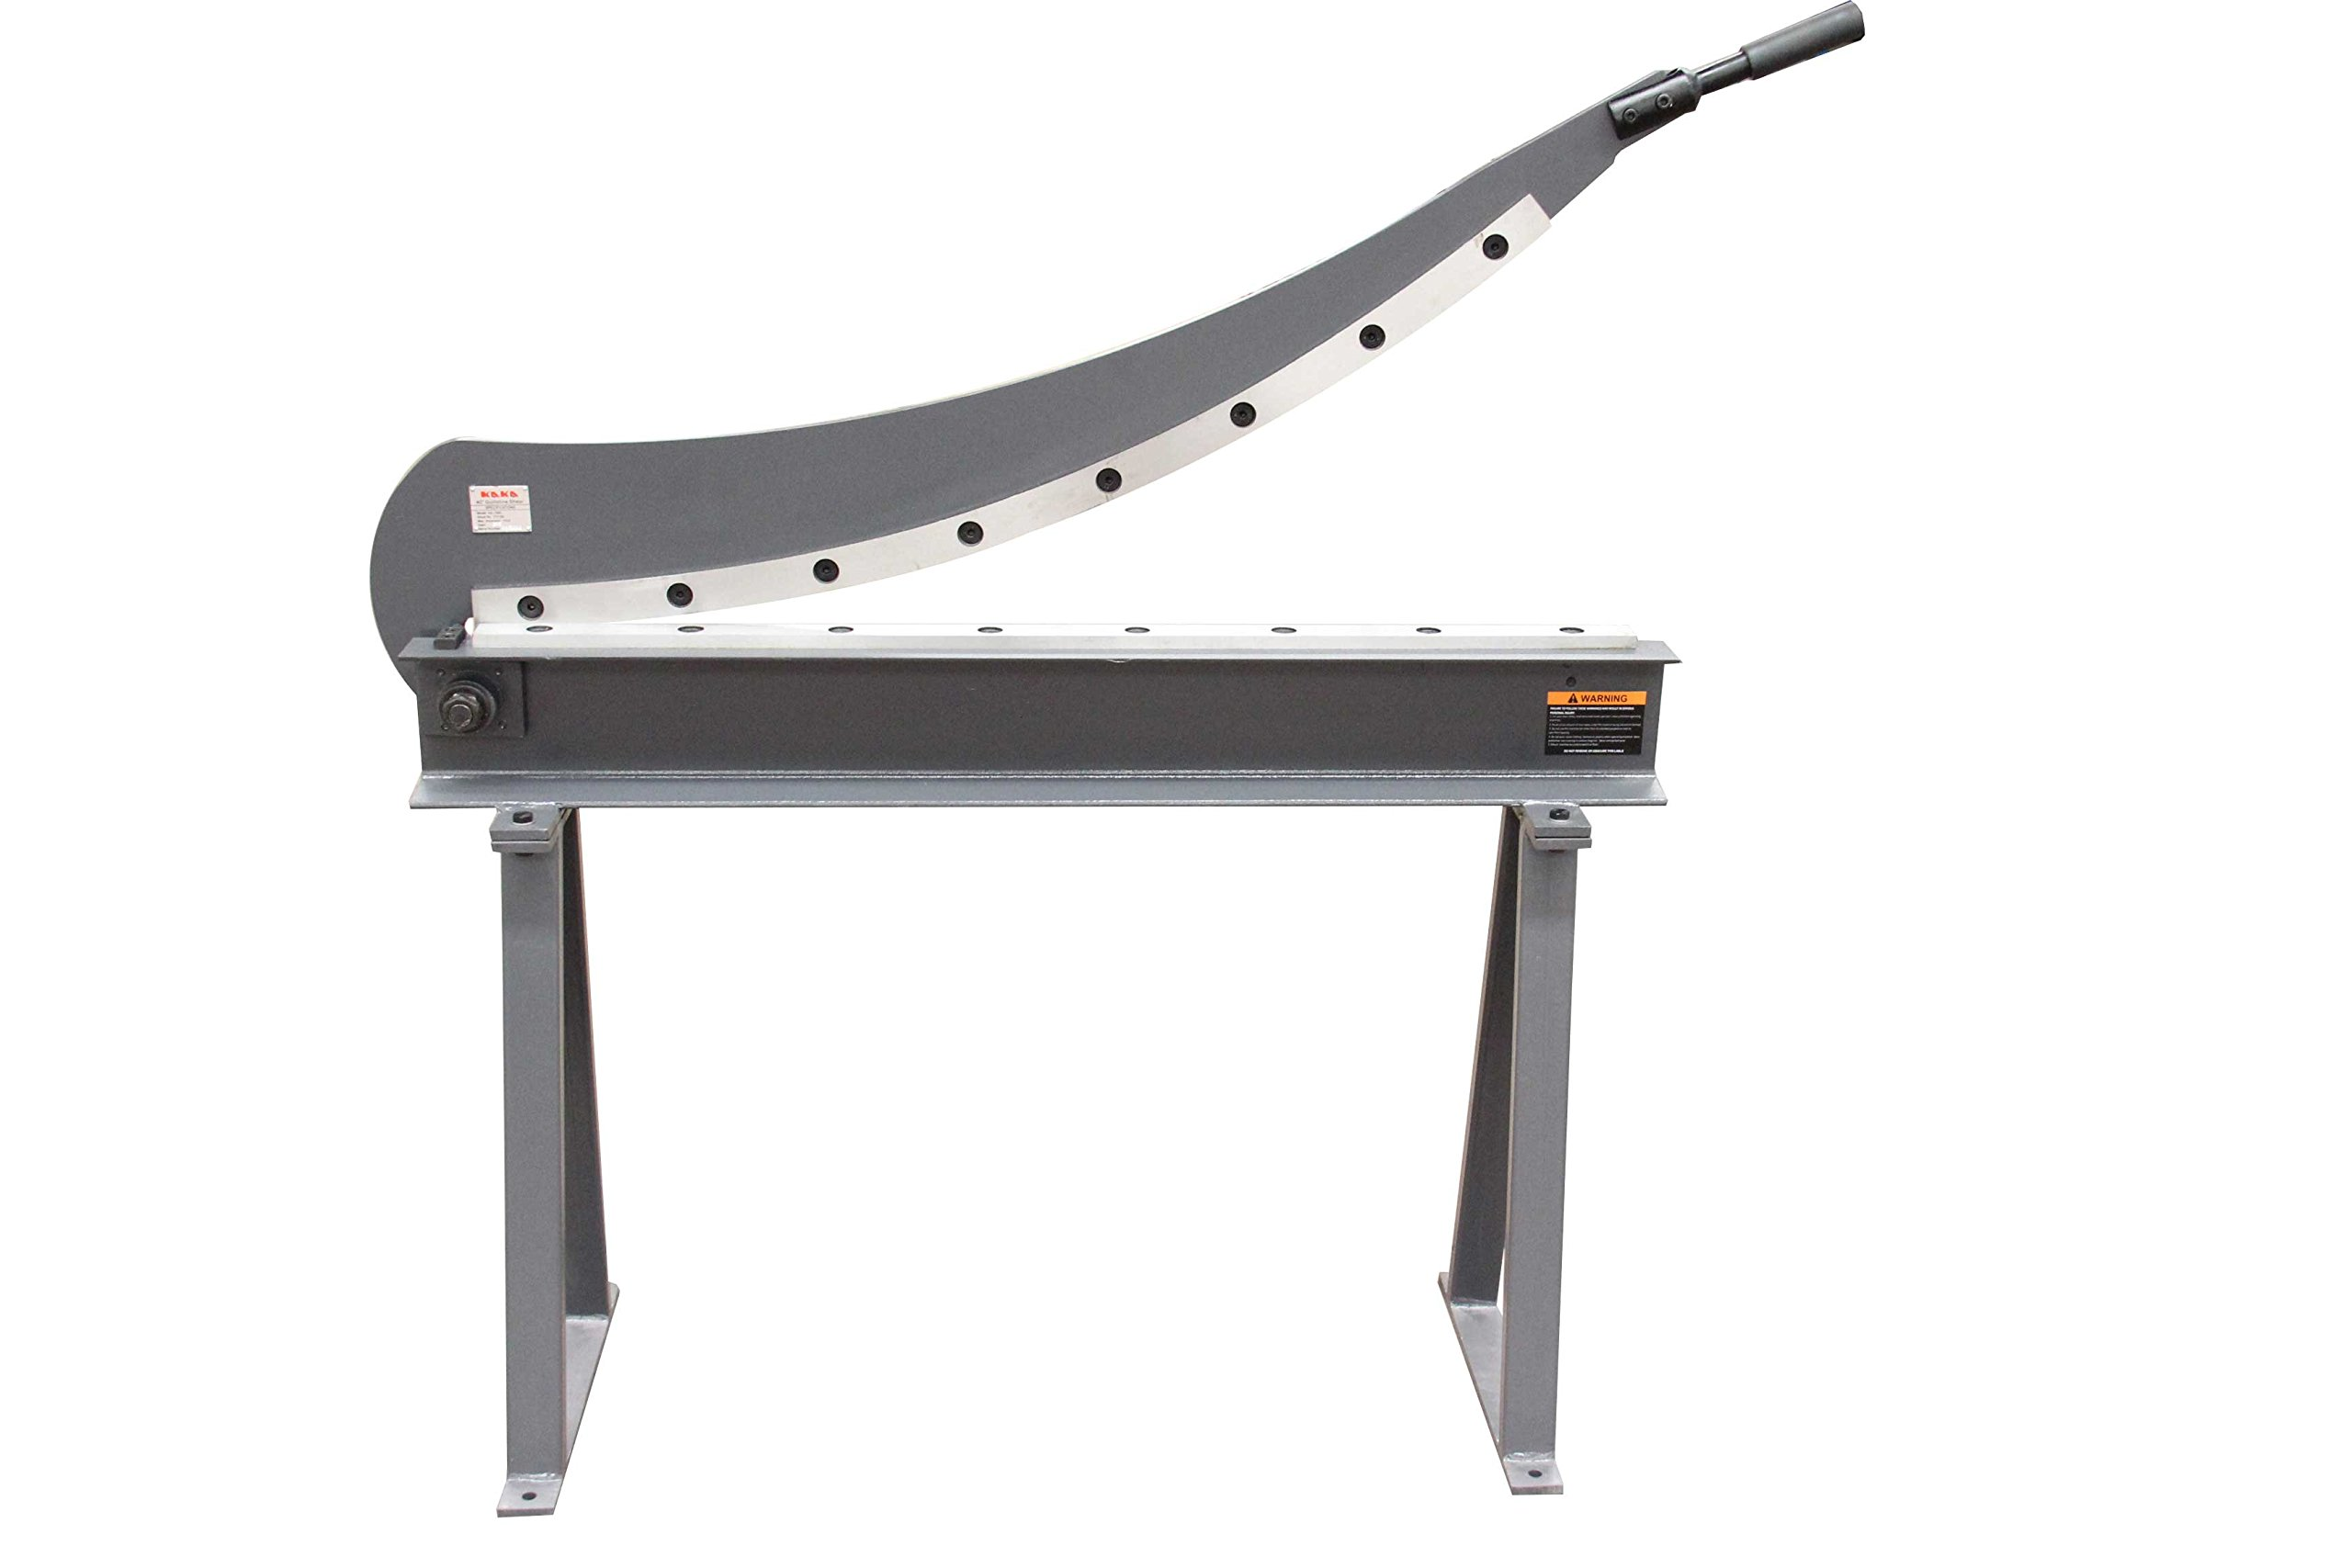 KAKA Industrial HS-1000 Manual Guillotine Shear, 40-Inch,16 Gauge Sheet Metal Fabrication Plate Cutting Cutter With Stand by KAKA INDUSTRIAL (Image #1)